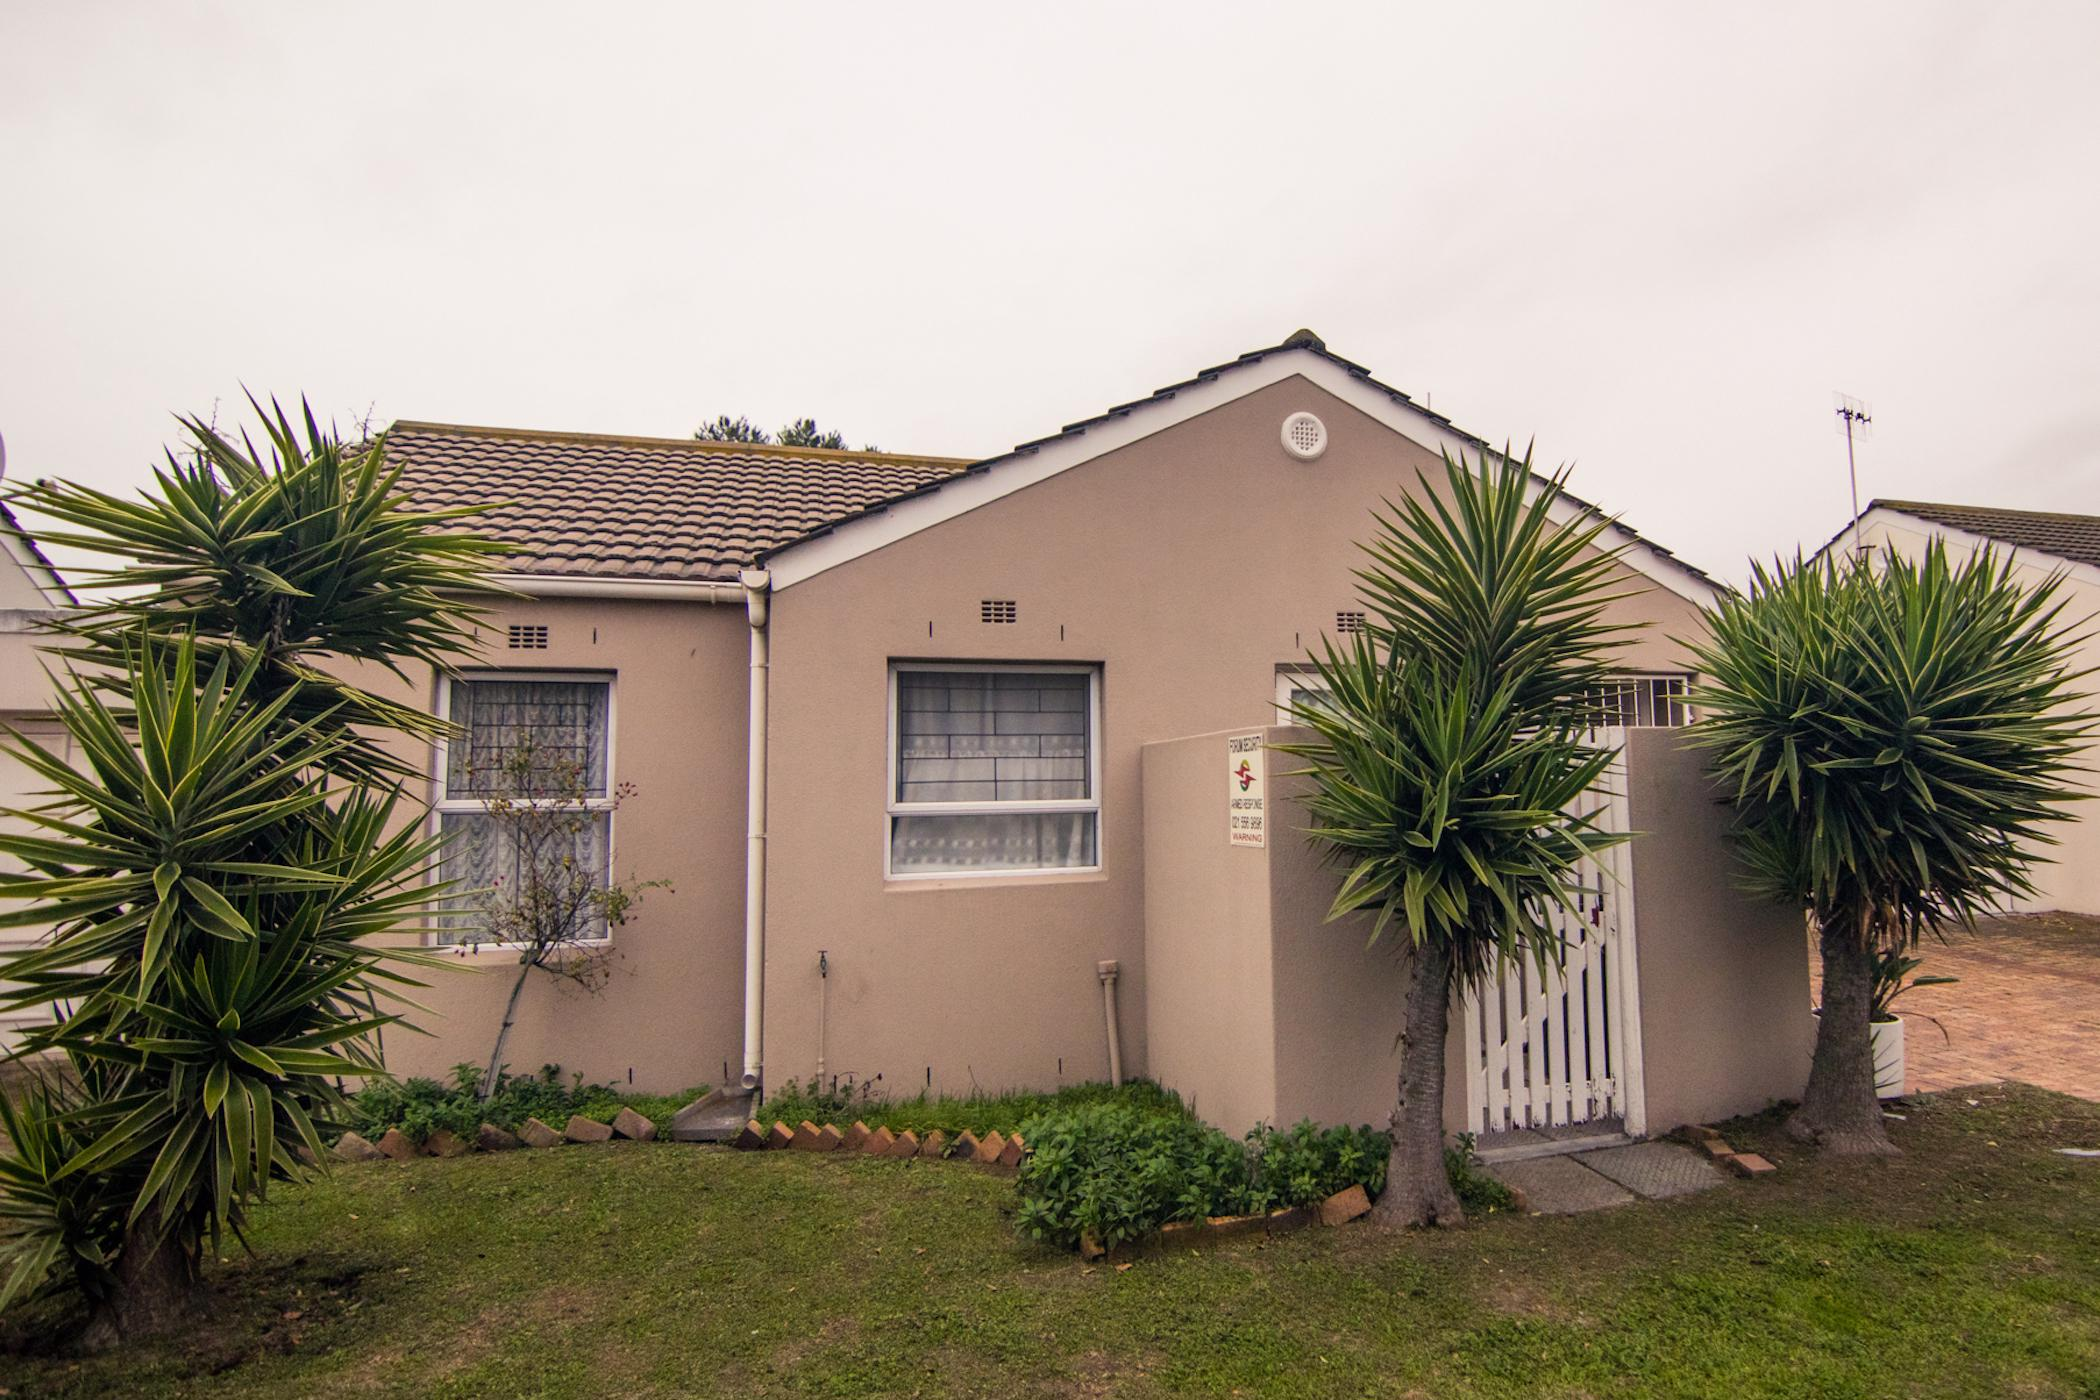 https://listing.pamgolding.co.za/images/properties/201907/1459999/H/1459999_H_1.jpg